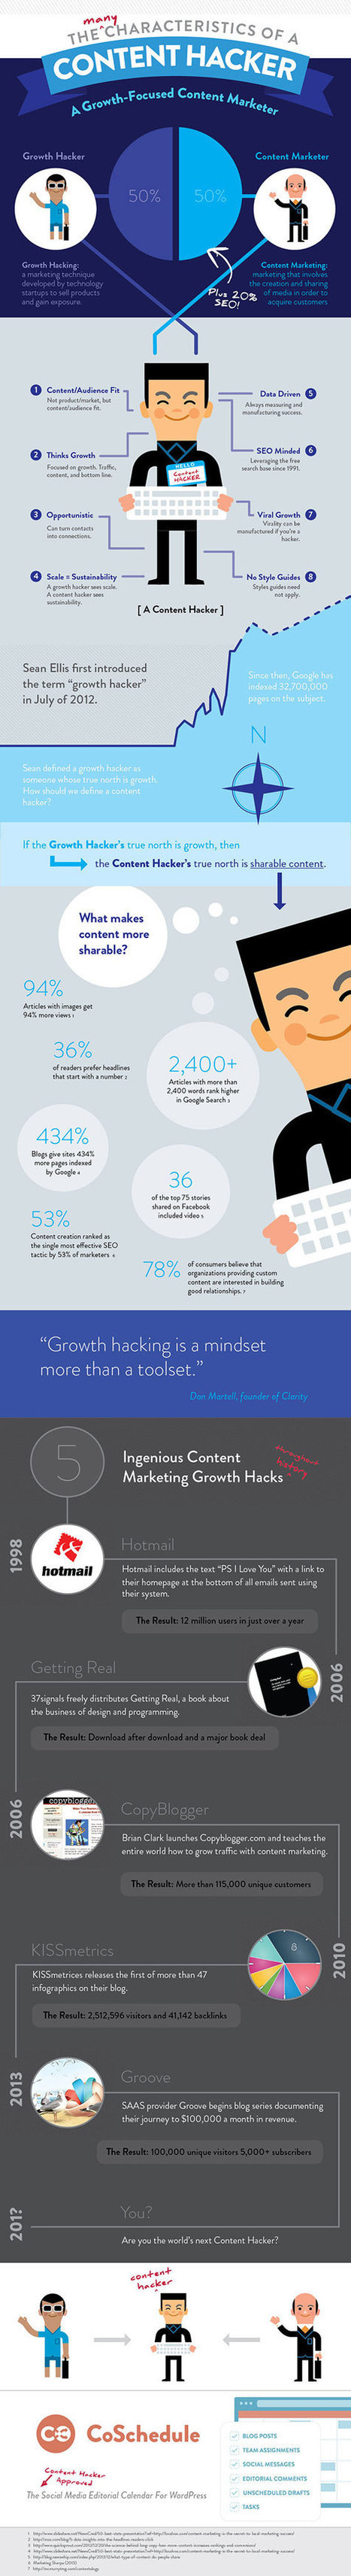 10 Content Marketing Growth Hacks [with Infographic] | Personal & Professional Growth | Scoop.it